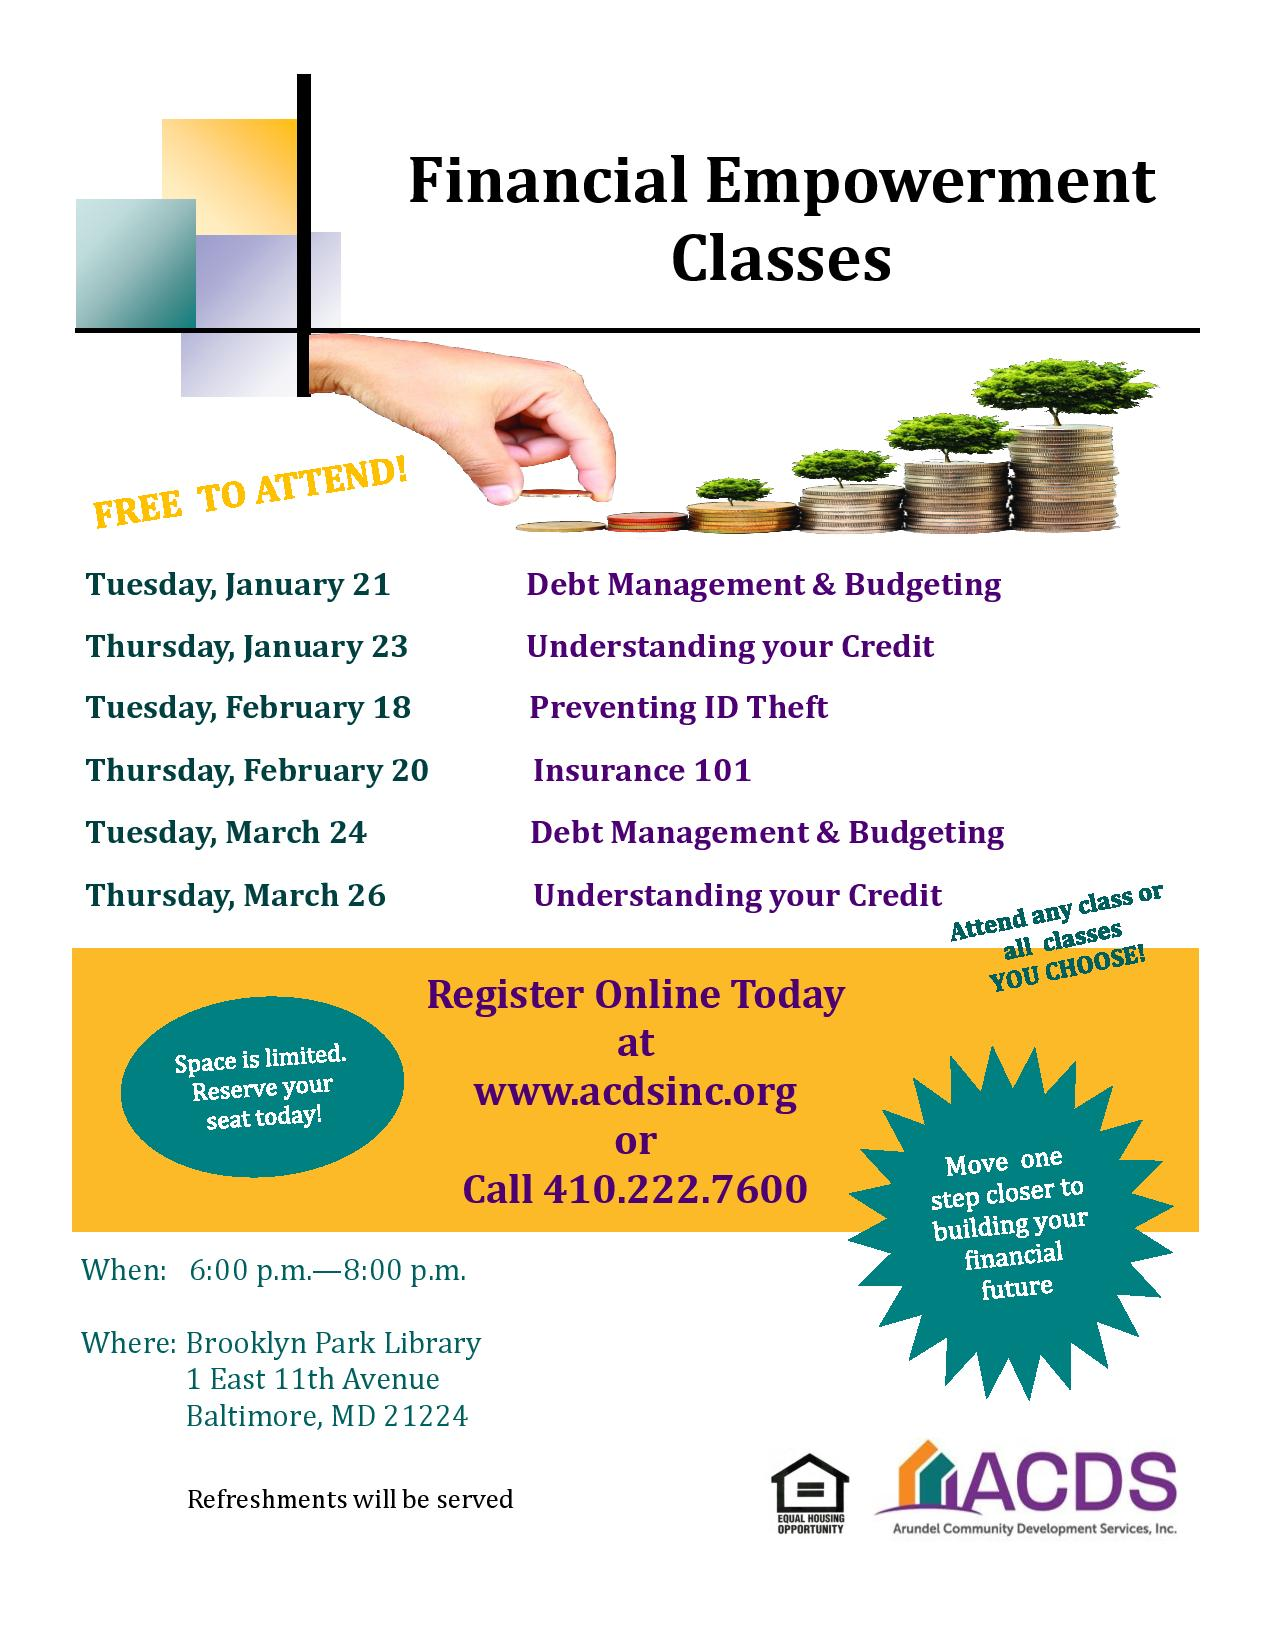 Flyer with dates for Financial Empowerment Courses